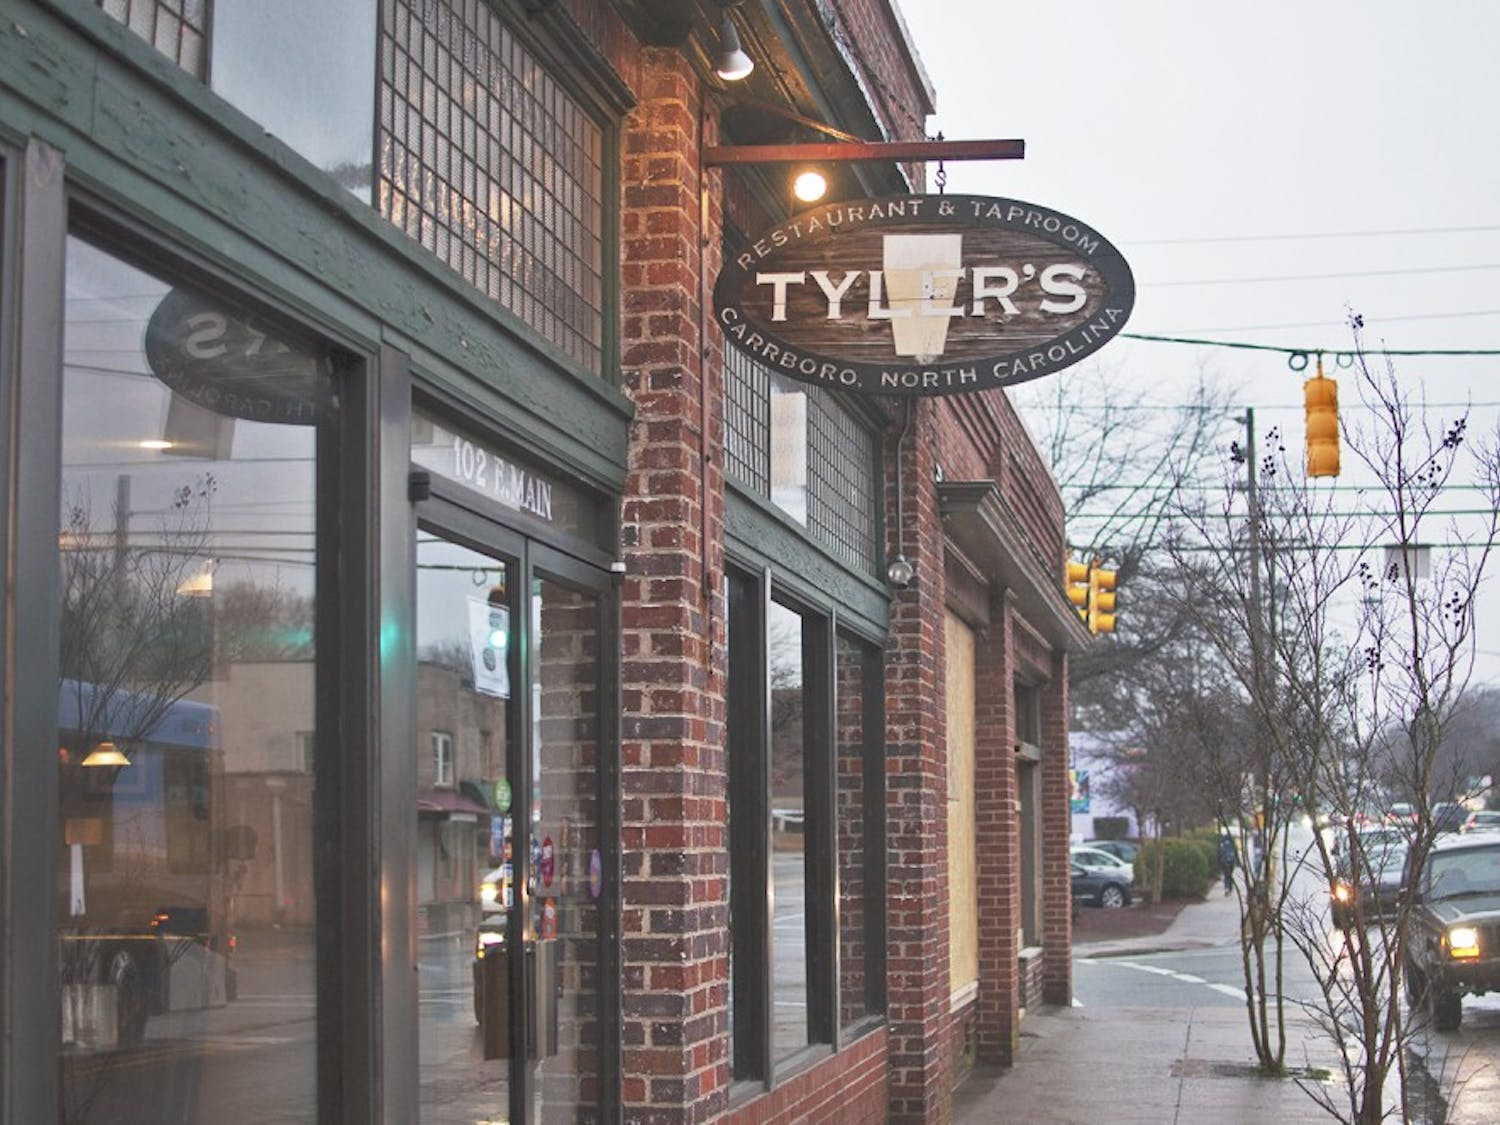 Tyler's Taproom on Main St. in Carrboro is undergoing renovations to expand its bar and bottle shop. The speakeasy's renovations will be done by the end of February and other renovations will be finished by the summer.